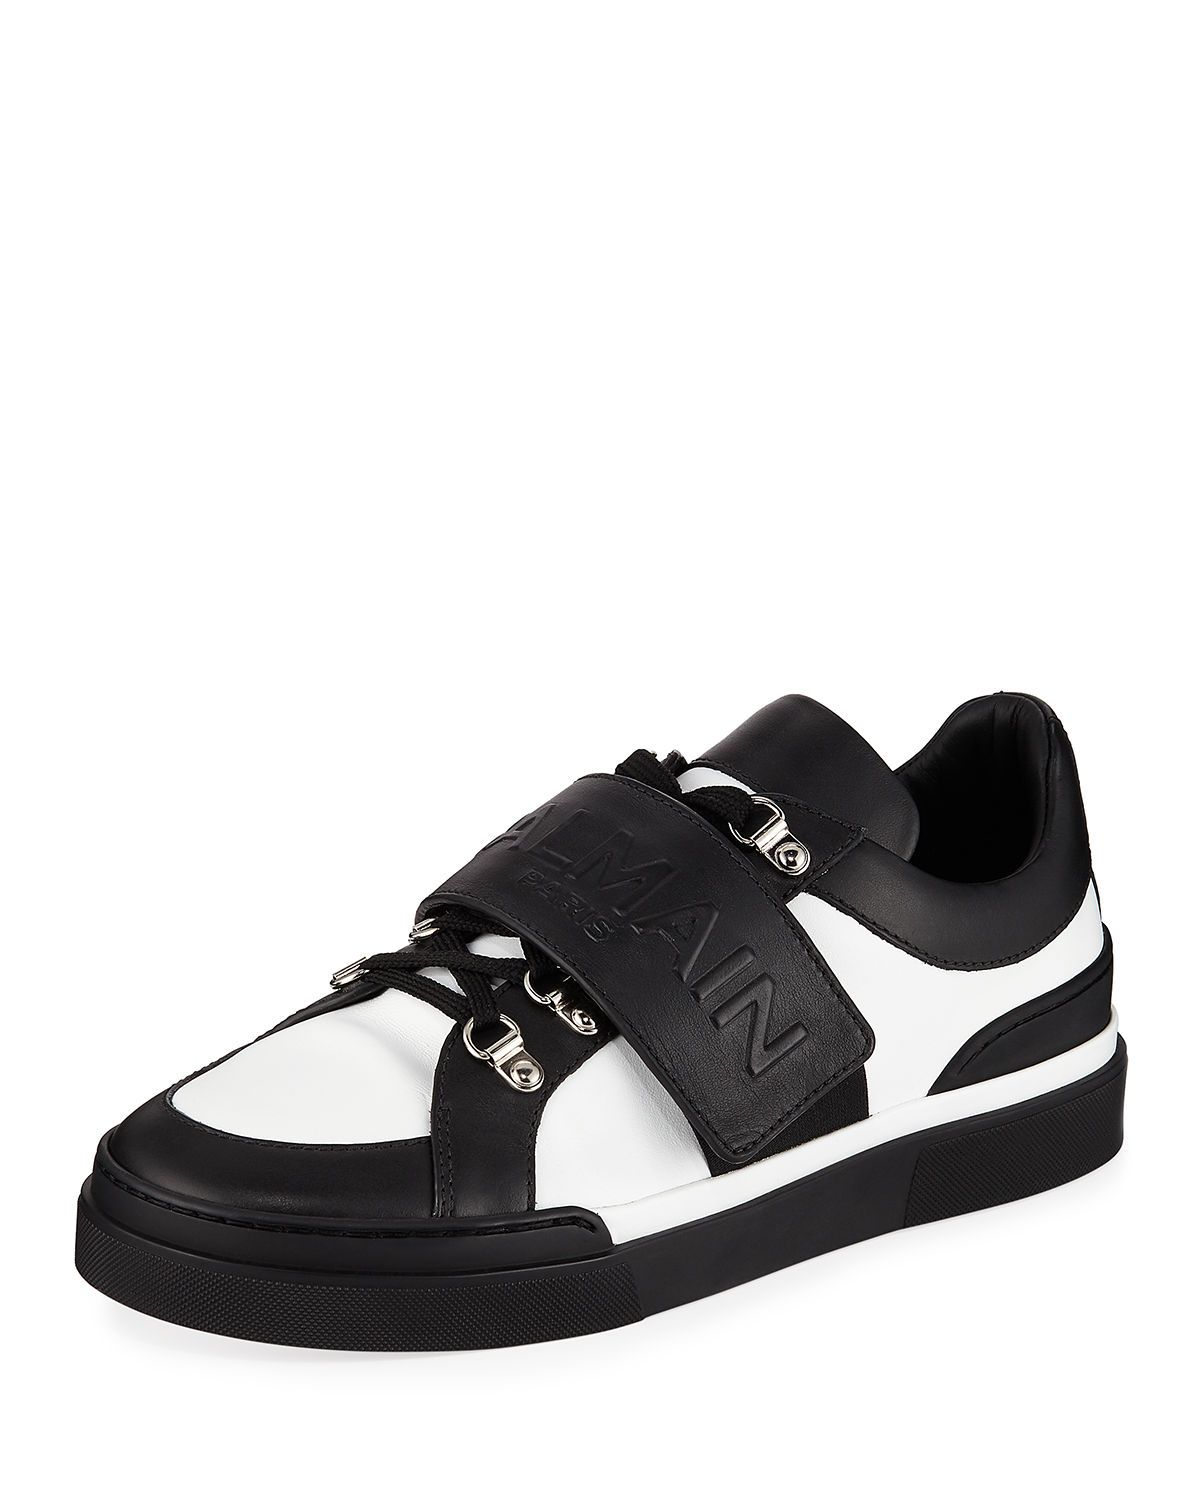 Men S Tricolor Low Top Leather Sneakers In Black Leather